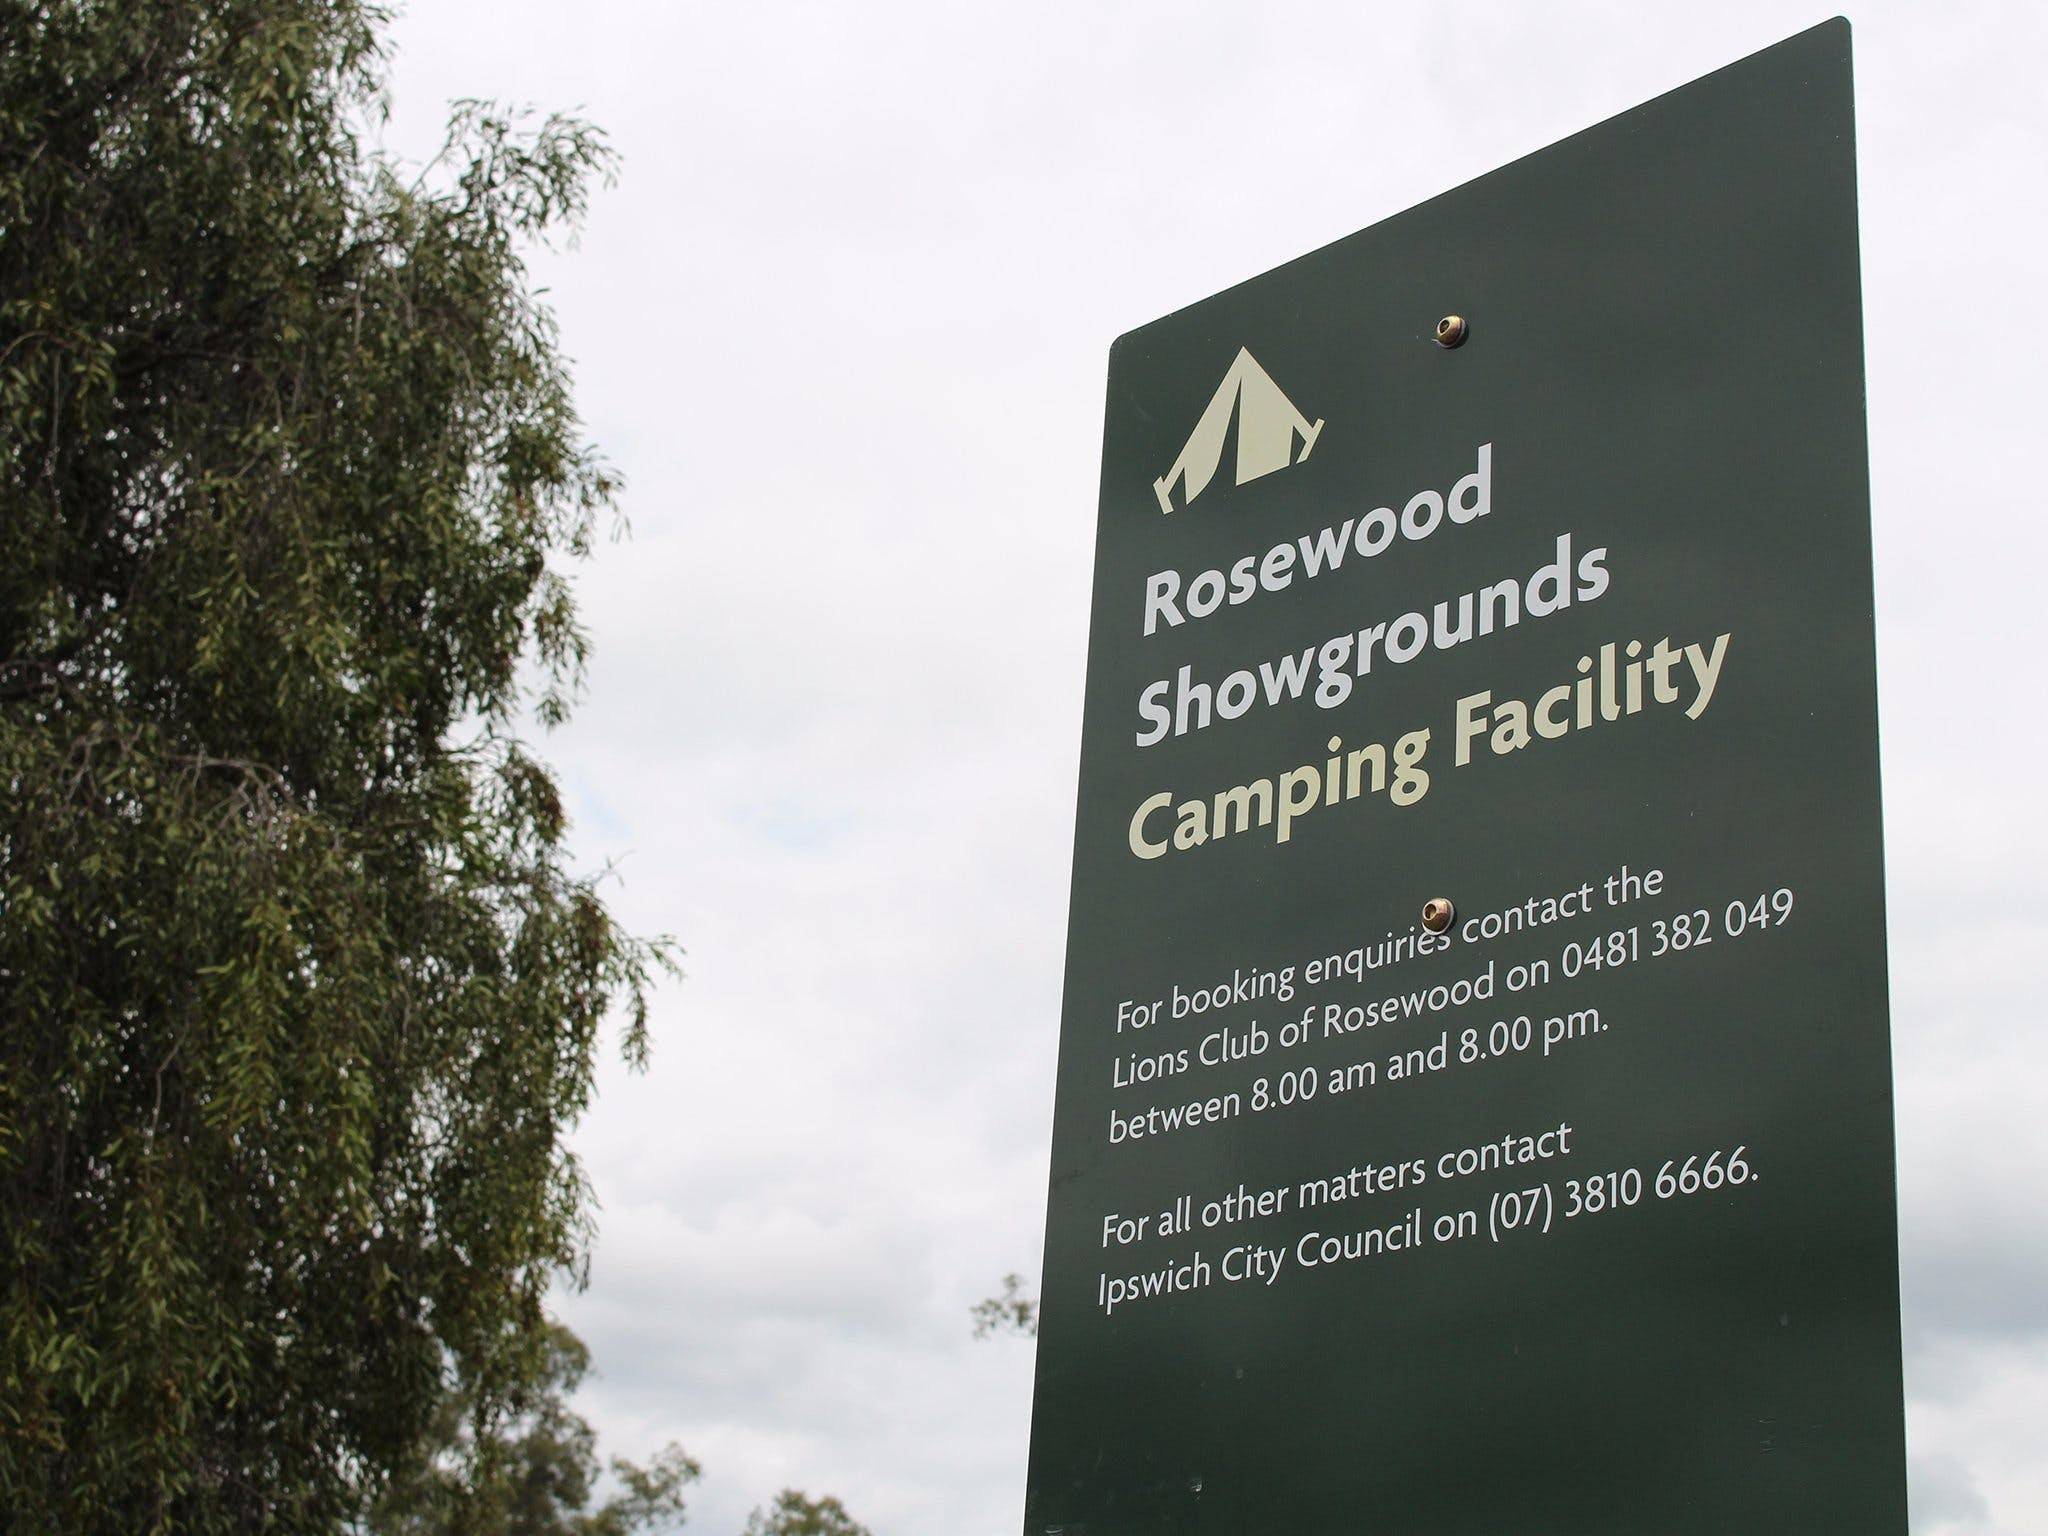 Rosewood Showgrounds Camping Facility - Accommodation in Surfers Paradise